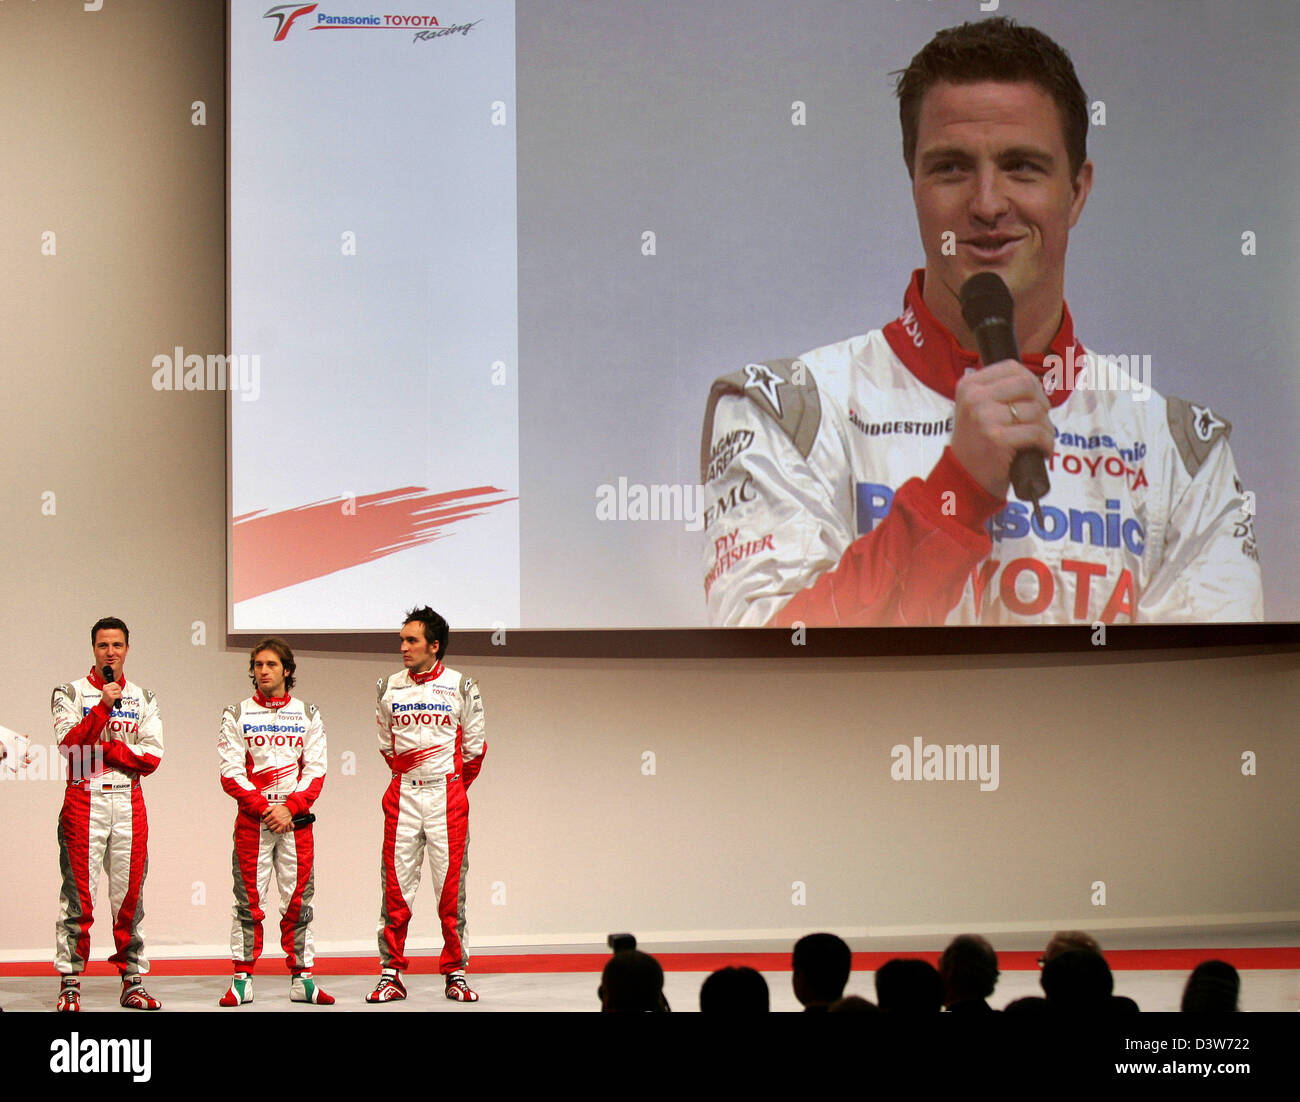 L R Ralf Schumacher Stock Photos & L R Ralf Schumacher